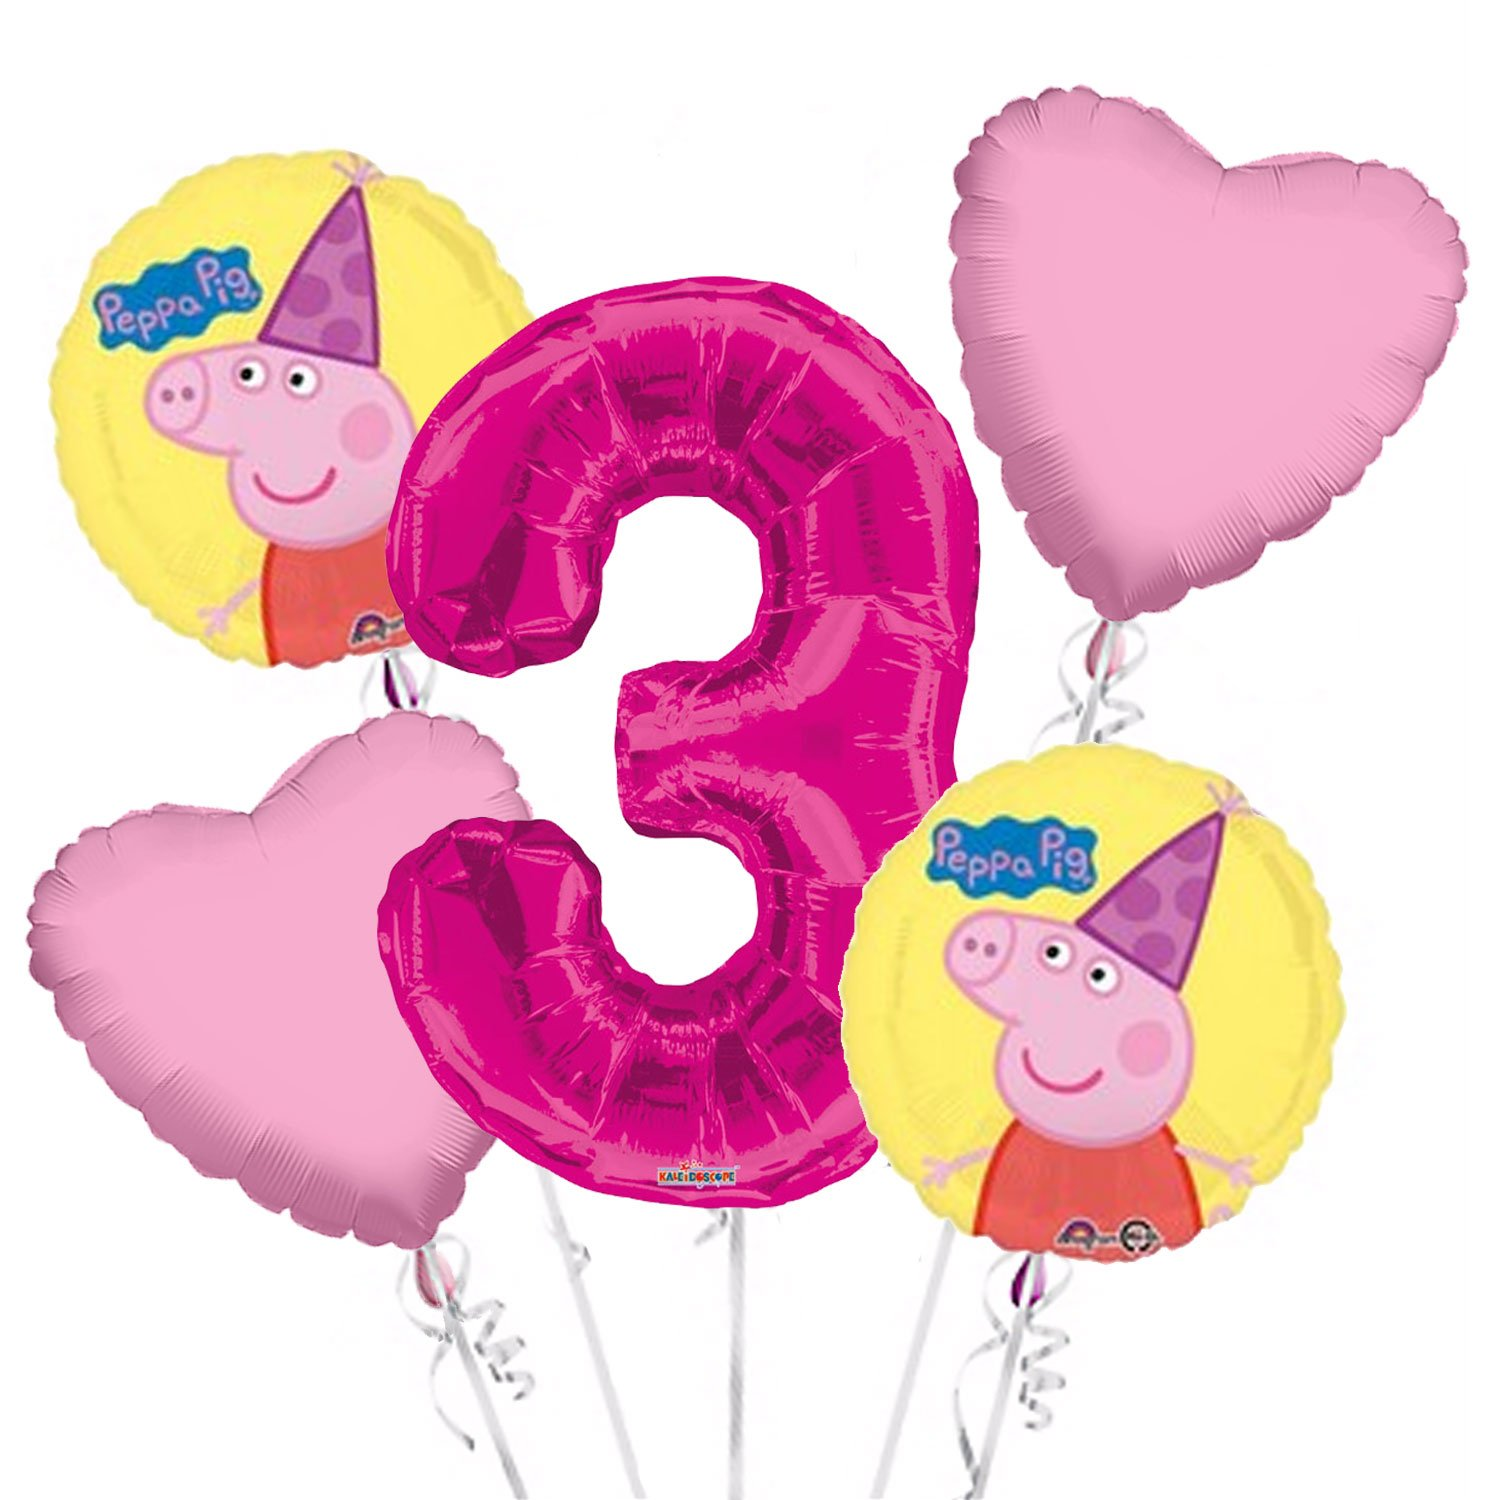 Peppa Pig Balloon Bouquet 3rd Birthday 5 pcs - Party Supplies Pink, 1 Giant Number 3 Balloon, 34in By Viva Party